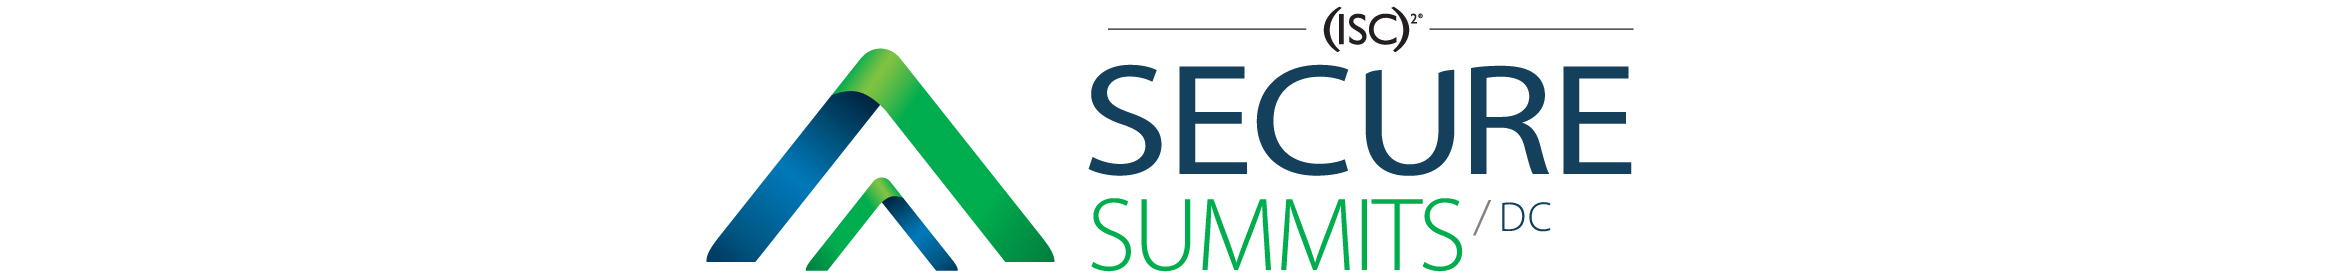 SecureSummitDC 2018 Main banner